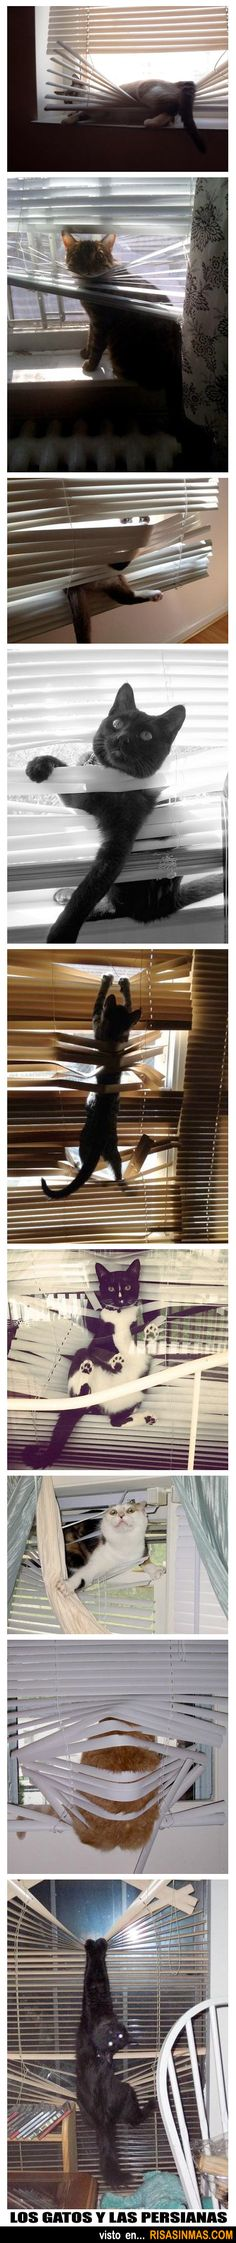 Los gatos y las persianas.<<<<<---I have no idea what that means, but...CATS....in blinds...